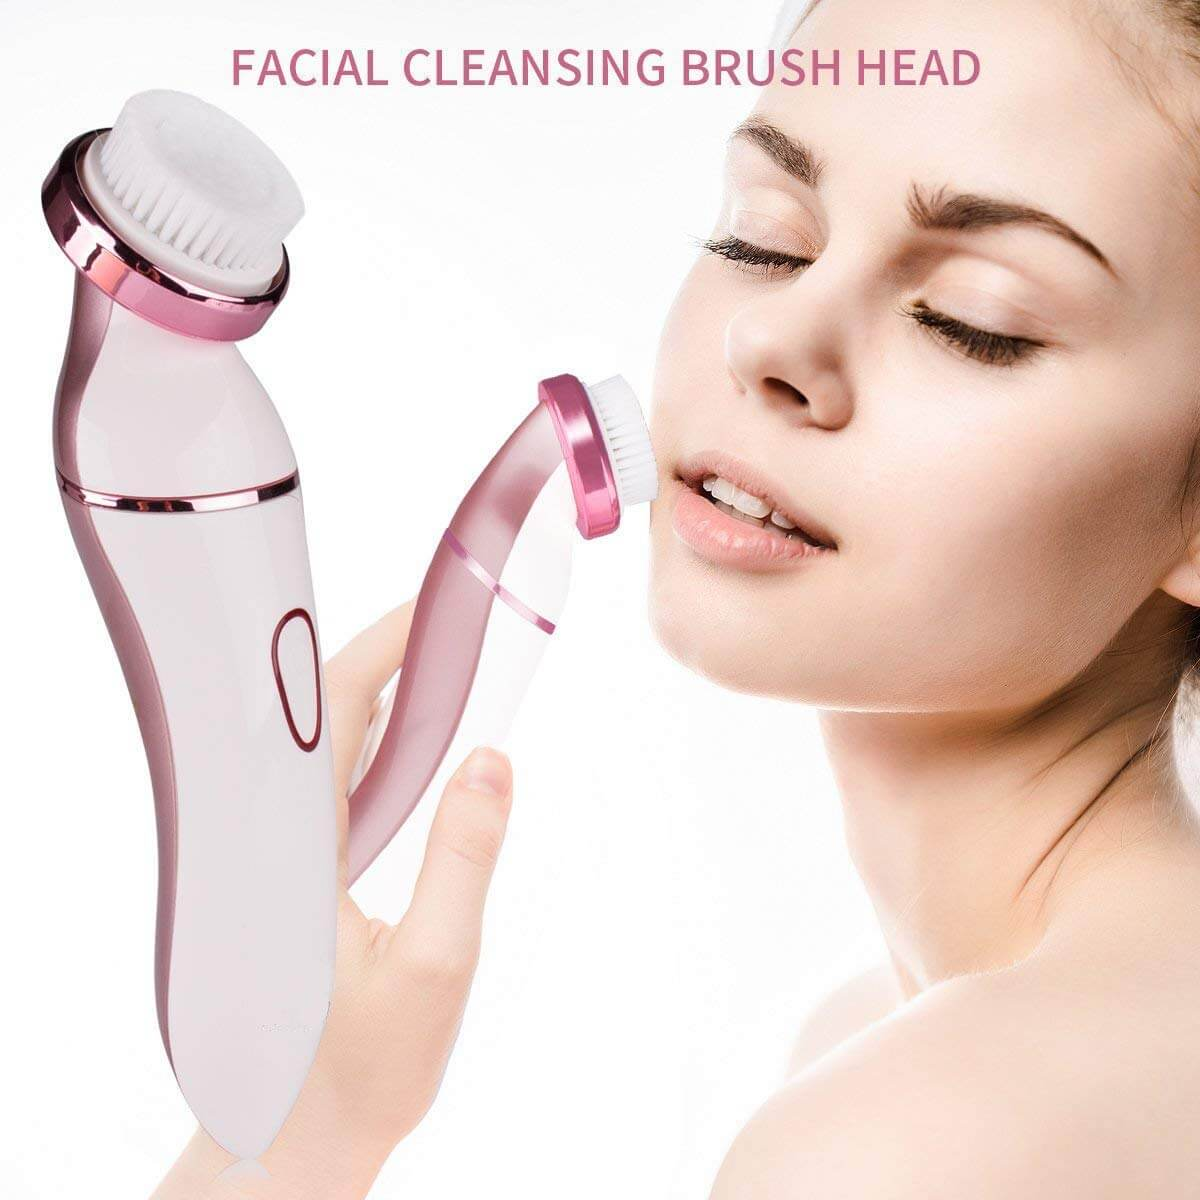 40% off ladies electric shaver 6 in 1 white